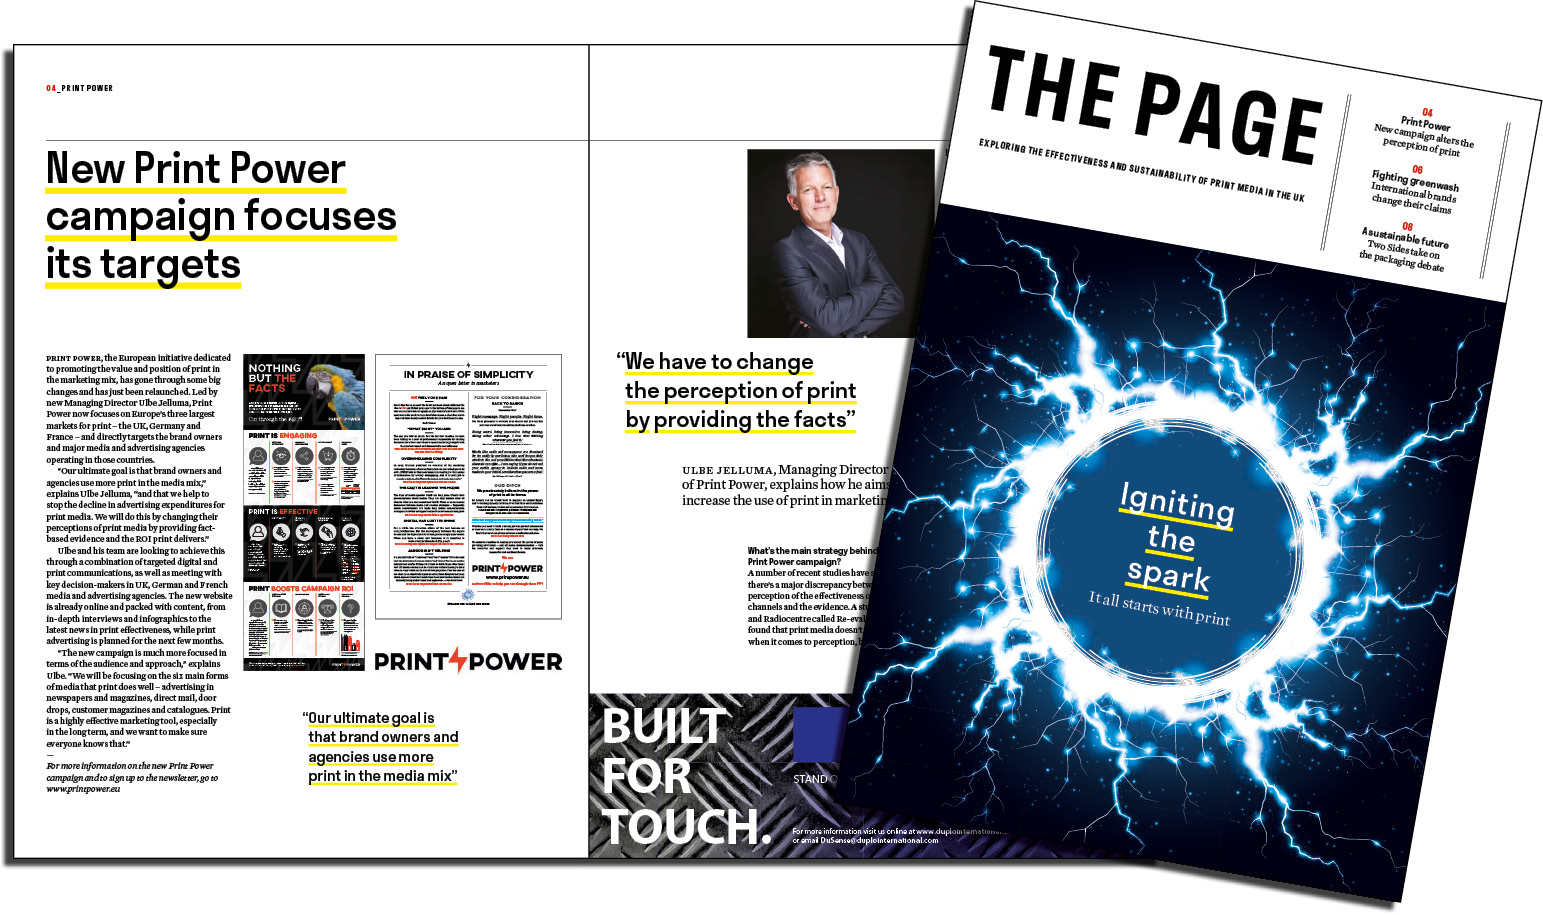 The_Page_Cover_and_Spread.jpg